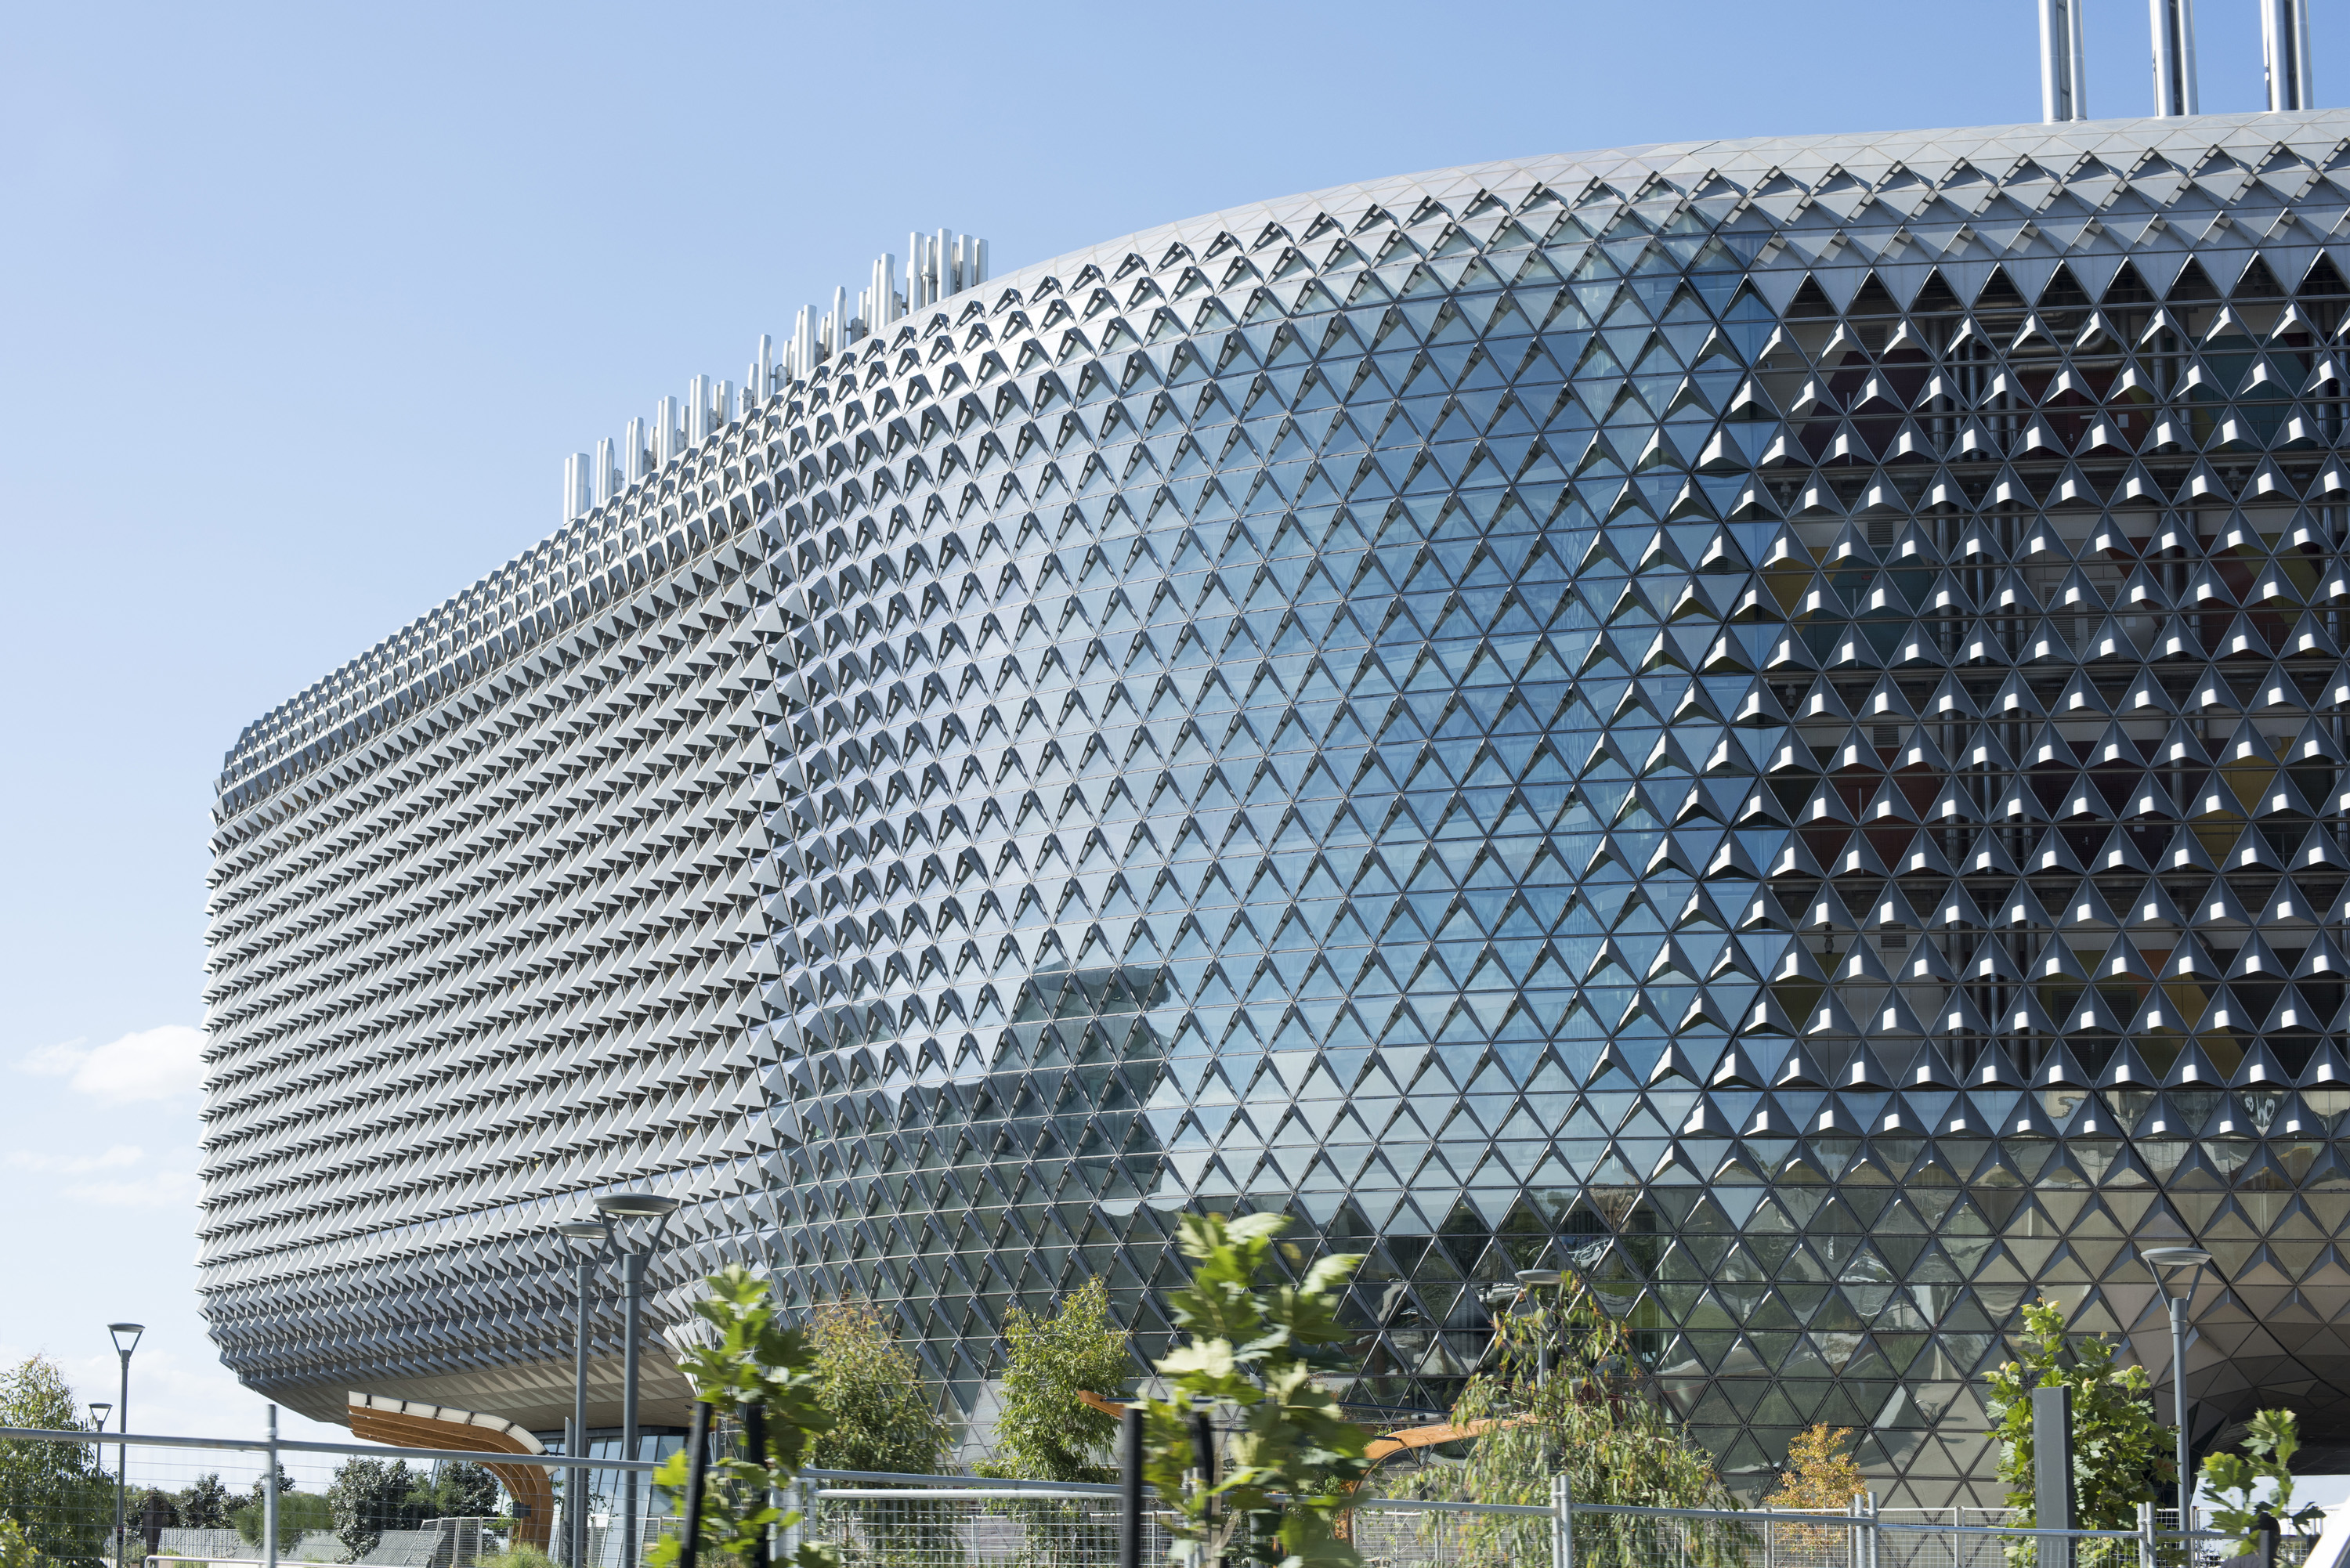 The modern curved facade of the South Australian Health and Medical Research Institute, the SAHMRI building, in Adelaide